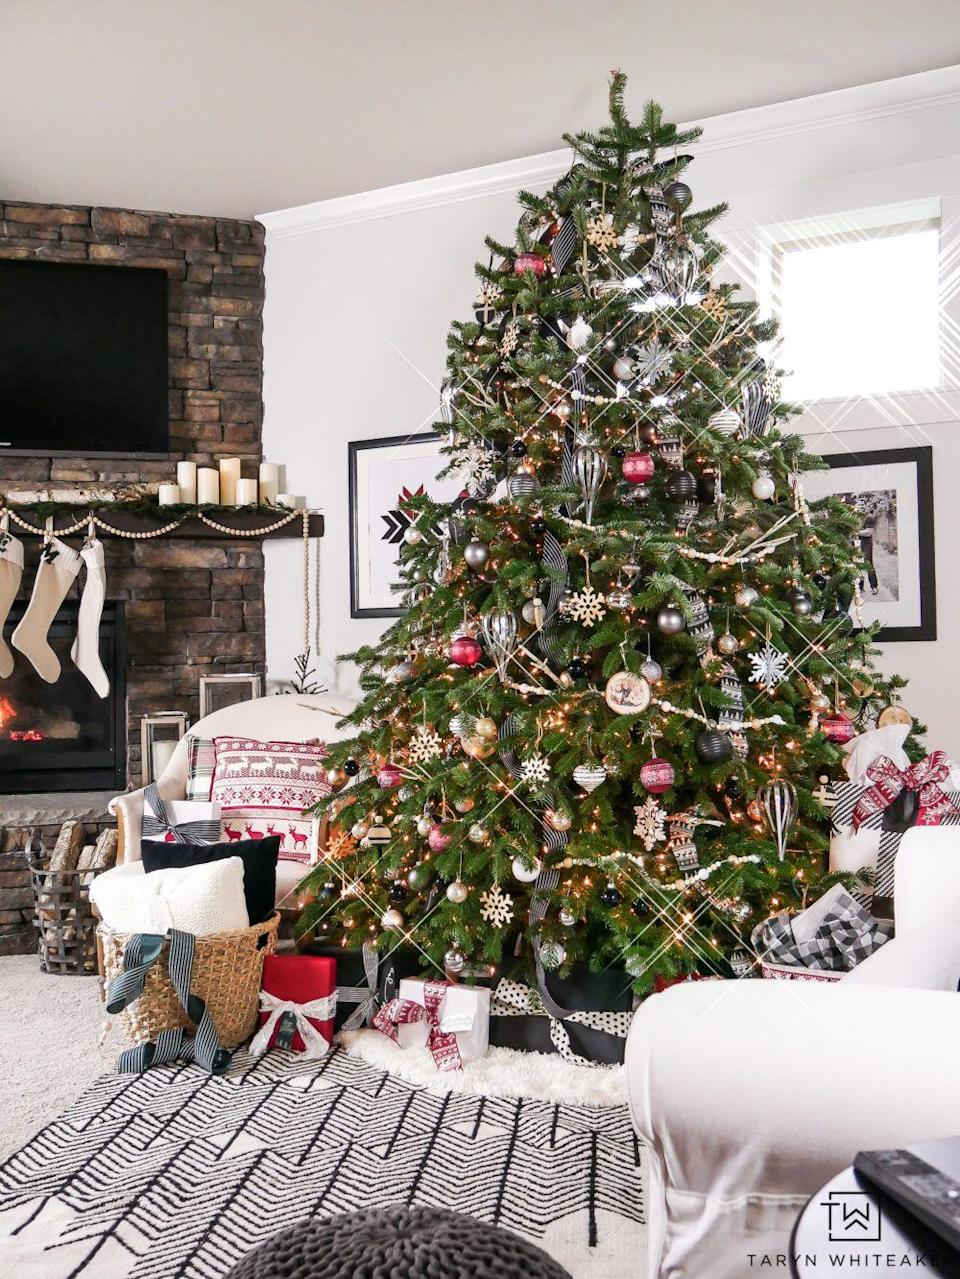 """<p>Lean into a subtle Scandinavian theme with nature-inspired accents, sleek metal touches, and adorable woodland creature ornaments. </p><p><strong><em>Get the tutorial at <a href=""""https://tarynwhiteaker.com/woodland-chic-christmas-tree-9/"""" rel=""""nofollow noopener"""" target=""""_blank"""" data-ylk=""""slk:Taryn Whitaker Designs"""" class=""""link rapid-noclick-resp"""">Taryn Whitaker Designs</a>. </em></strong></p><p><a class=""""link rapid-noclick-resp"""" href=""""https://www.amazon.com/Snowflakes-Christmas-Ornaments-Hanging-Decorations/dp/B08HJ6JSPW?tag=syn-yahoo-20&ascsubtag=%5Bartid%7C10070.g.2025%5Bsrc%7Cyahoo-us"""" rel=""""nofollow noopener"""" target=""""_blank"""" data-ylk=""""slk:SHOP WOOD SNOWFLAKE ORNAMENTS"""">SHOP WOOD SNOWFLAKE ORNAMENTS</a></p>"""